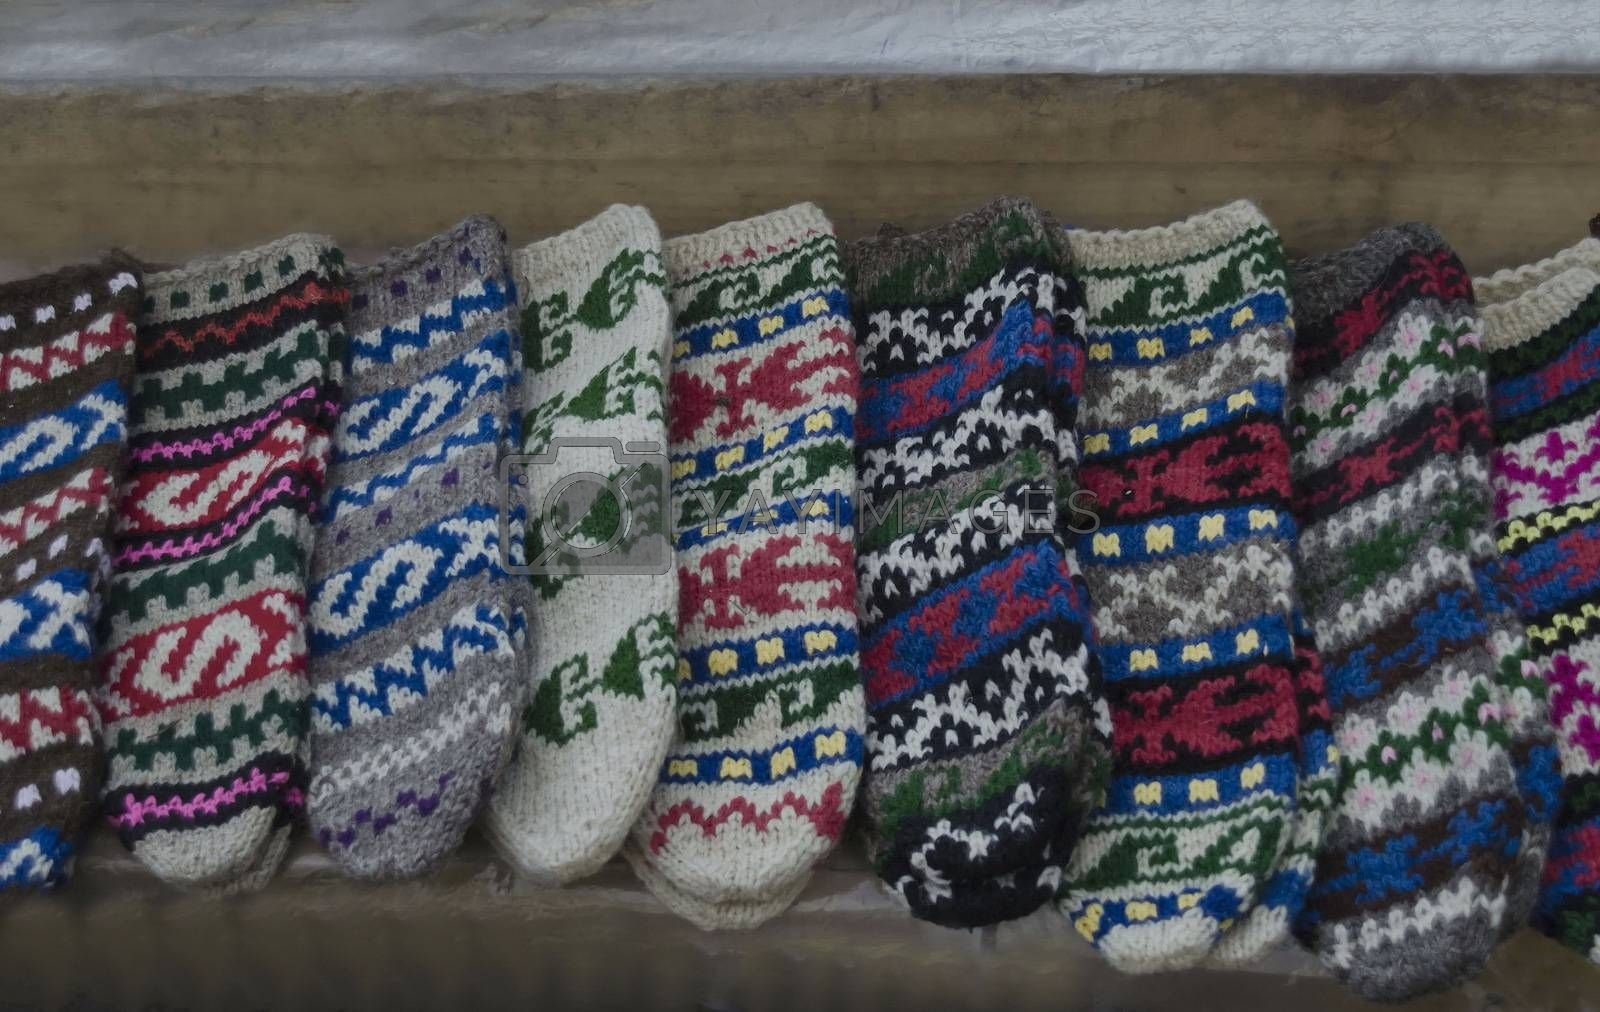 Traditional bulgarian colourful wool stocking knitted by hand  knitted by hand